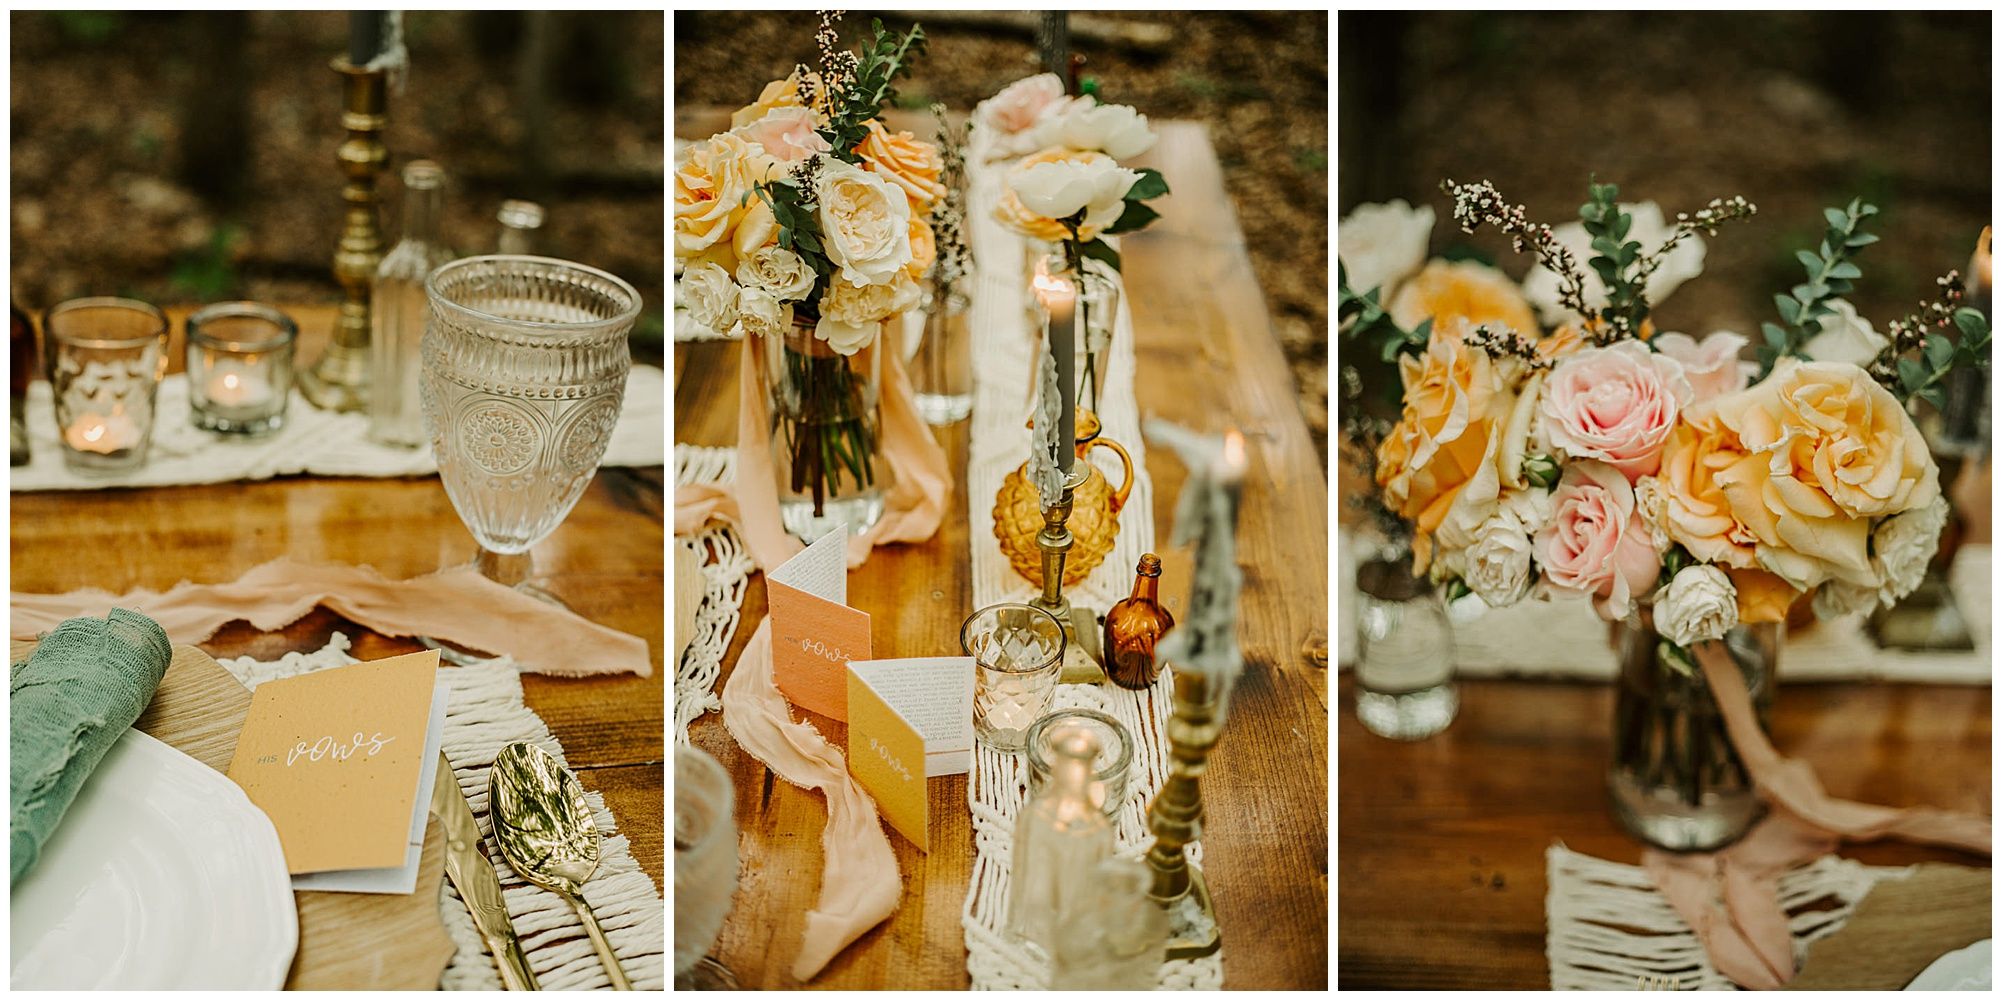 colorful pastel floral arrangements and bouquet with vintage style glass decor and glassware and boho wedding theme at prancing deer farm. outdoor natural sustainable venue in warwick md. now featured on my eastern shore wedding.